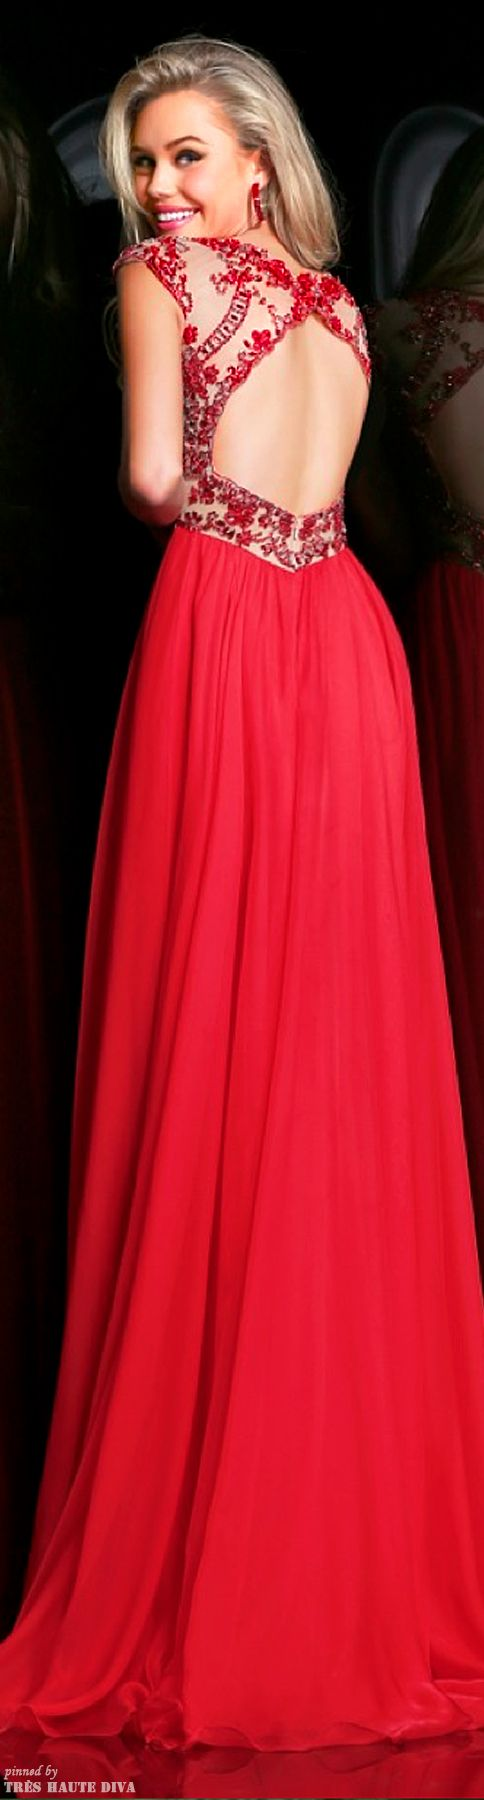 79 best images about Dresses on Pinterest | Chiffon prom dresses ...